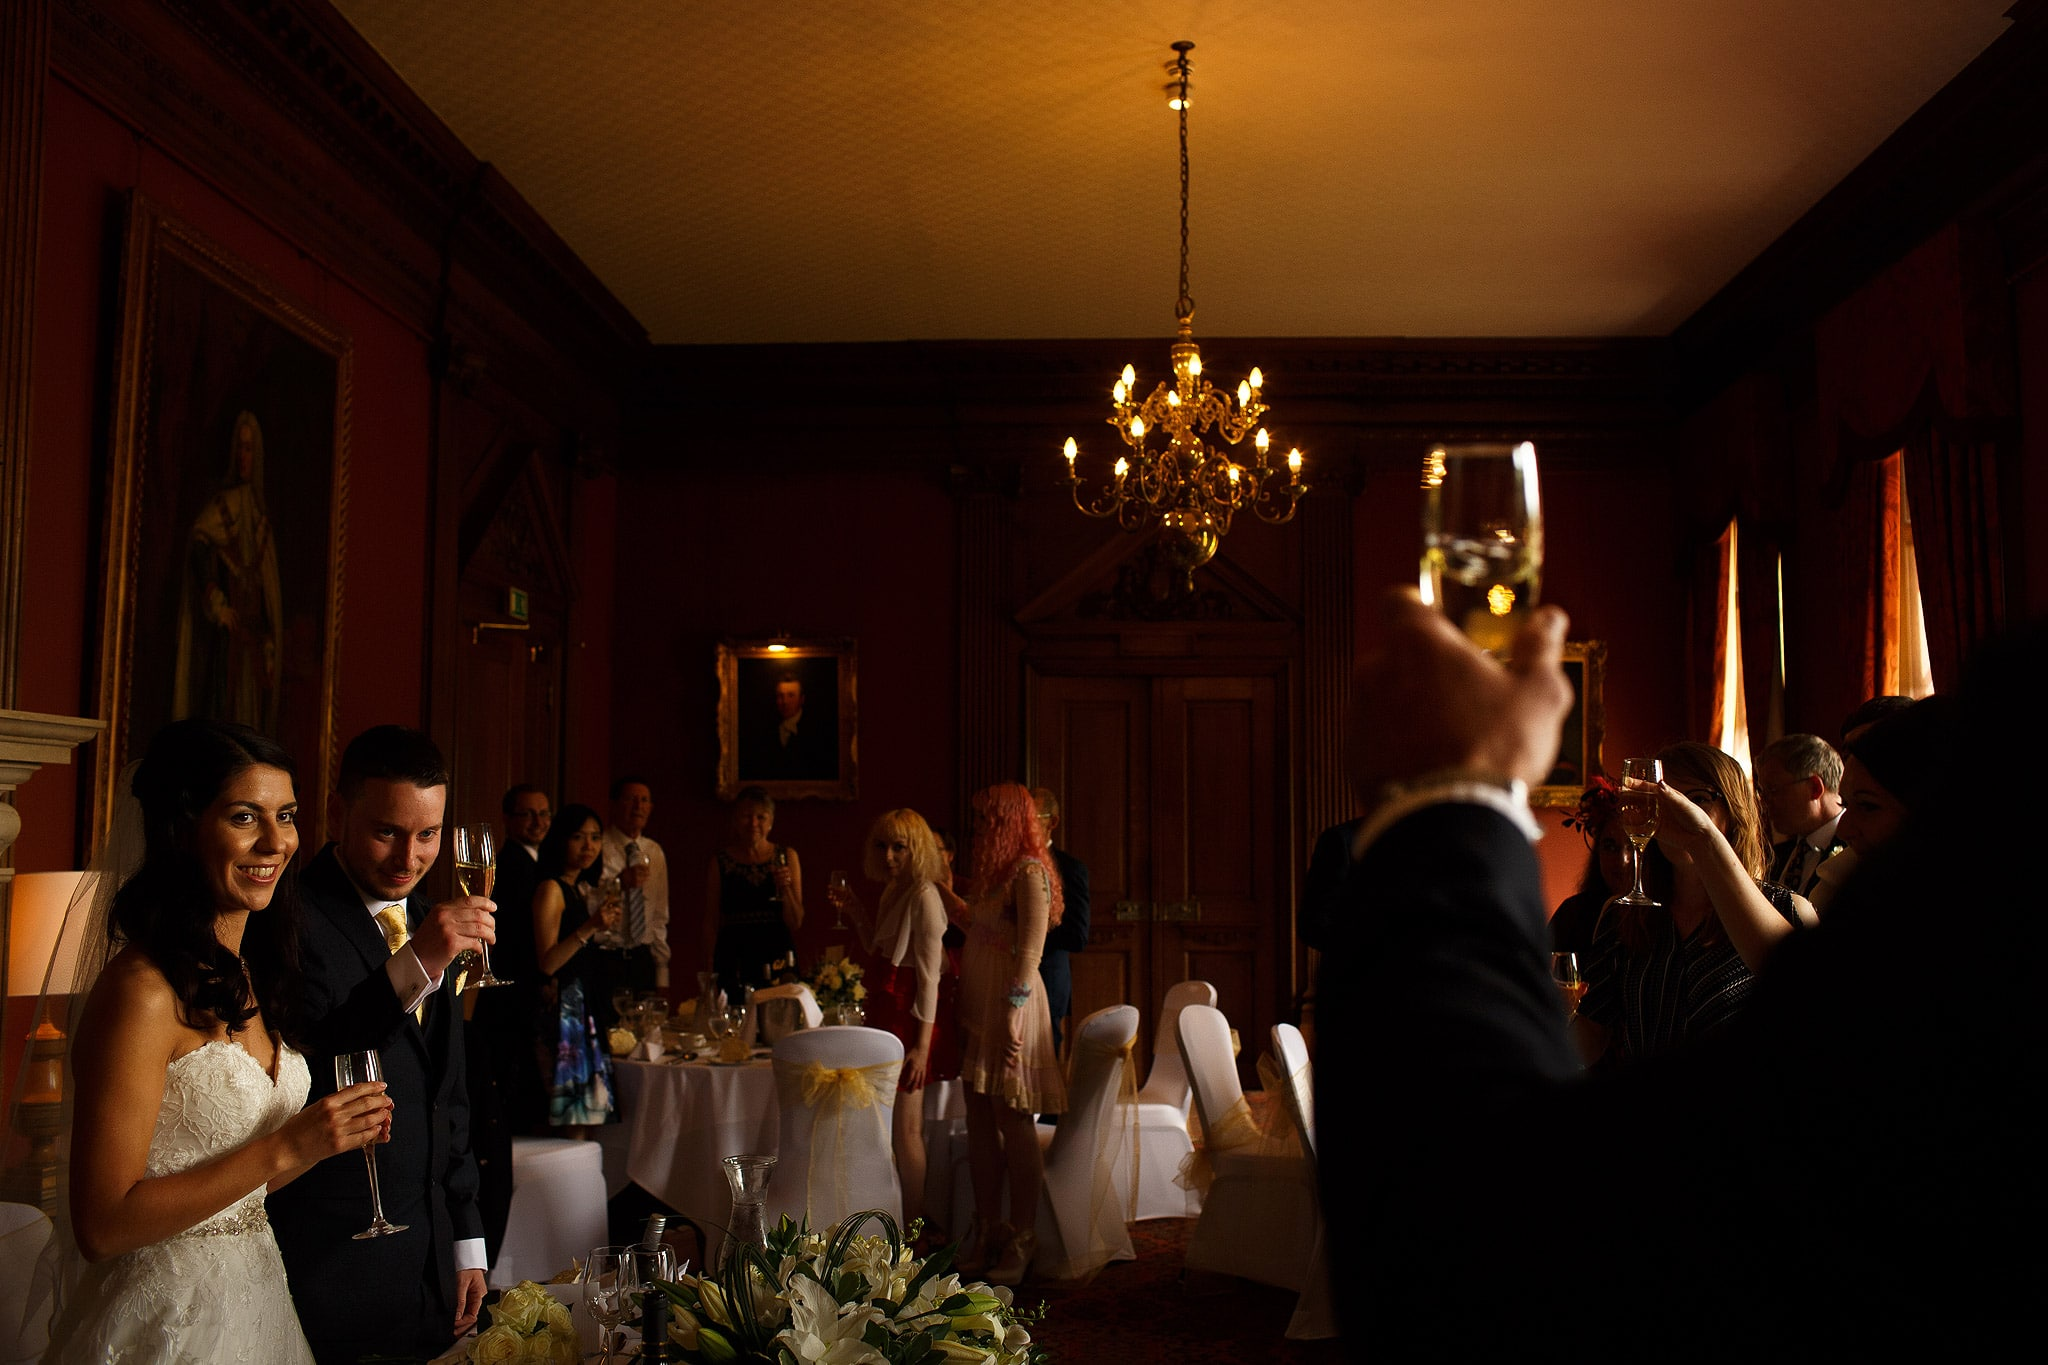 Wedding guests raising glasses to cheers at Crathorne Hall wedding